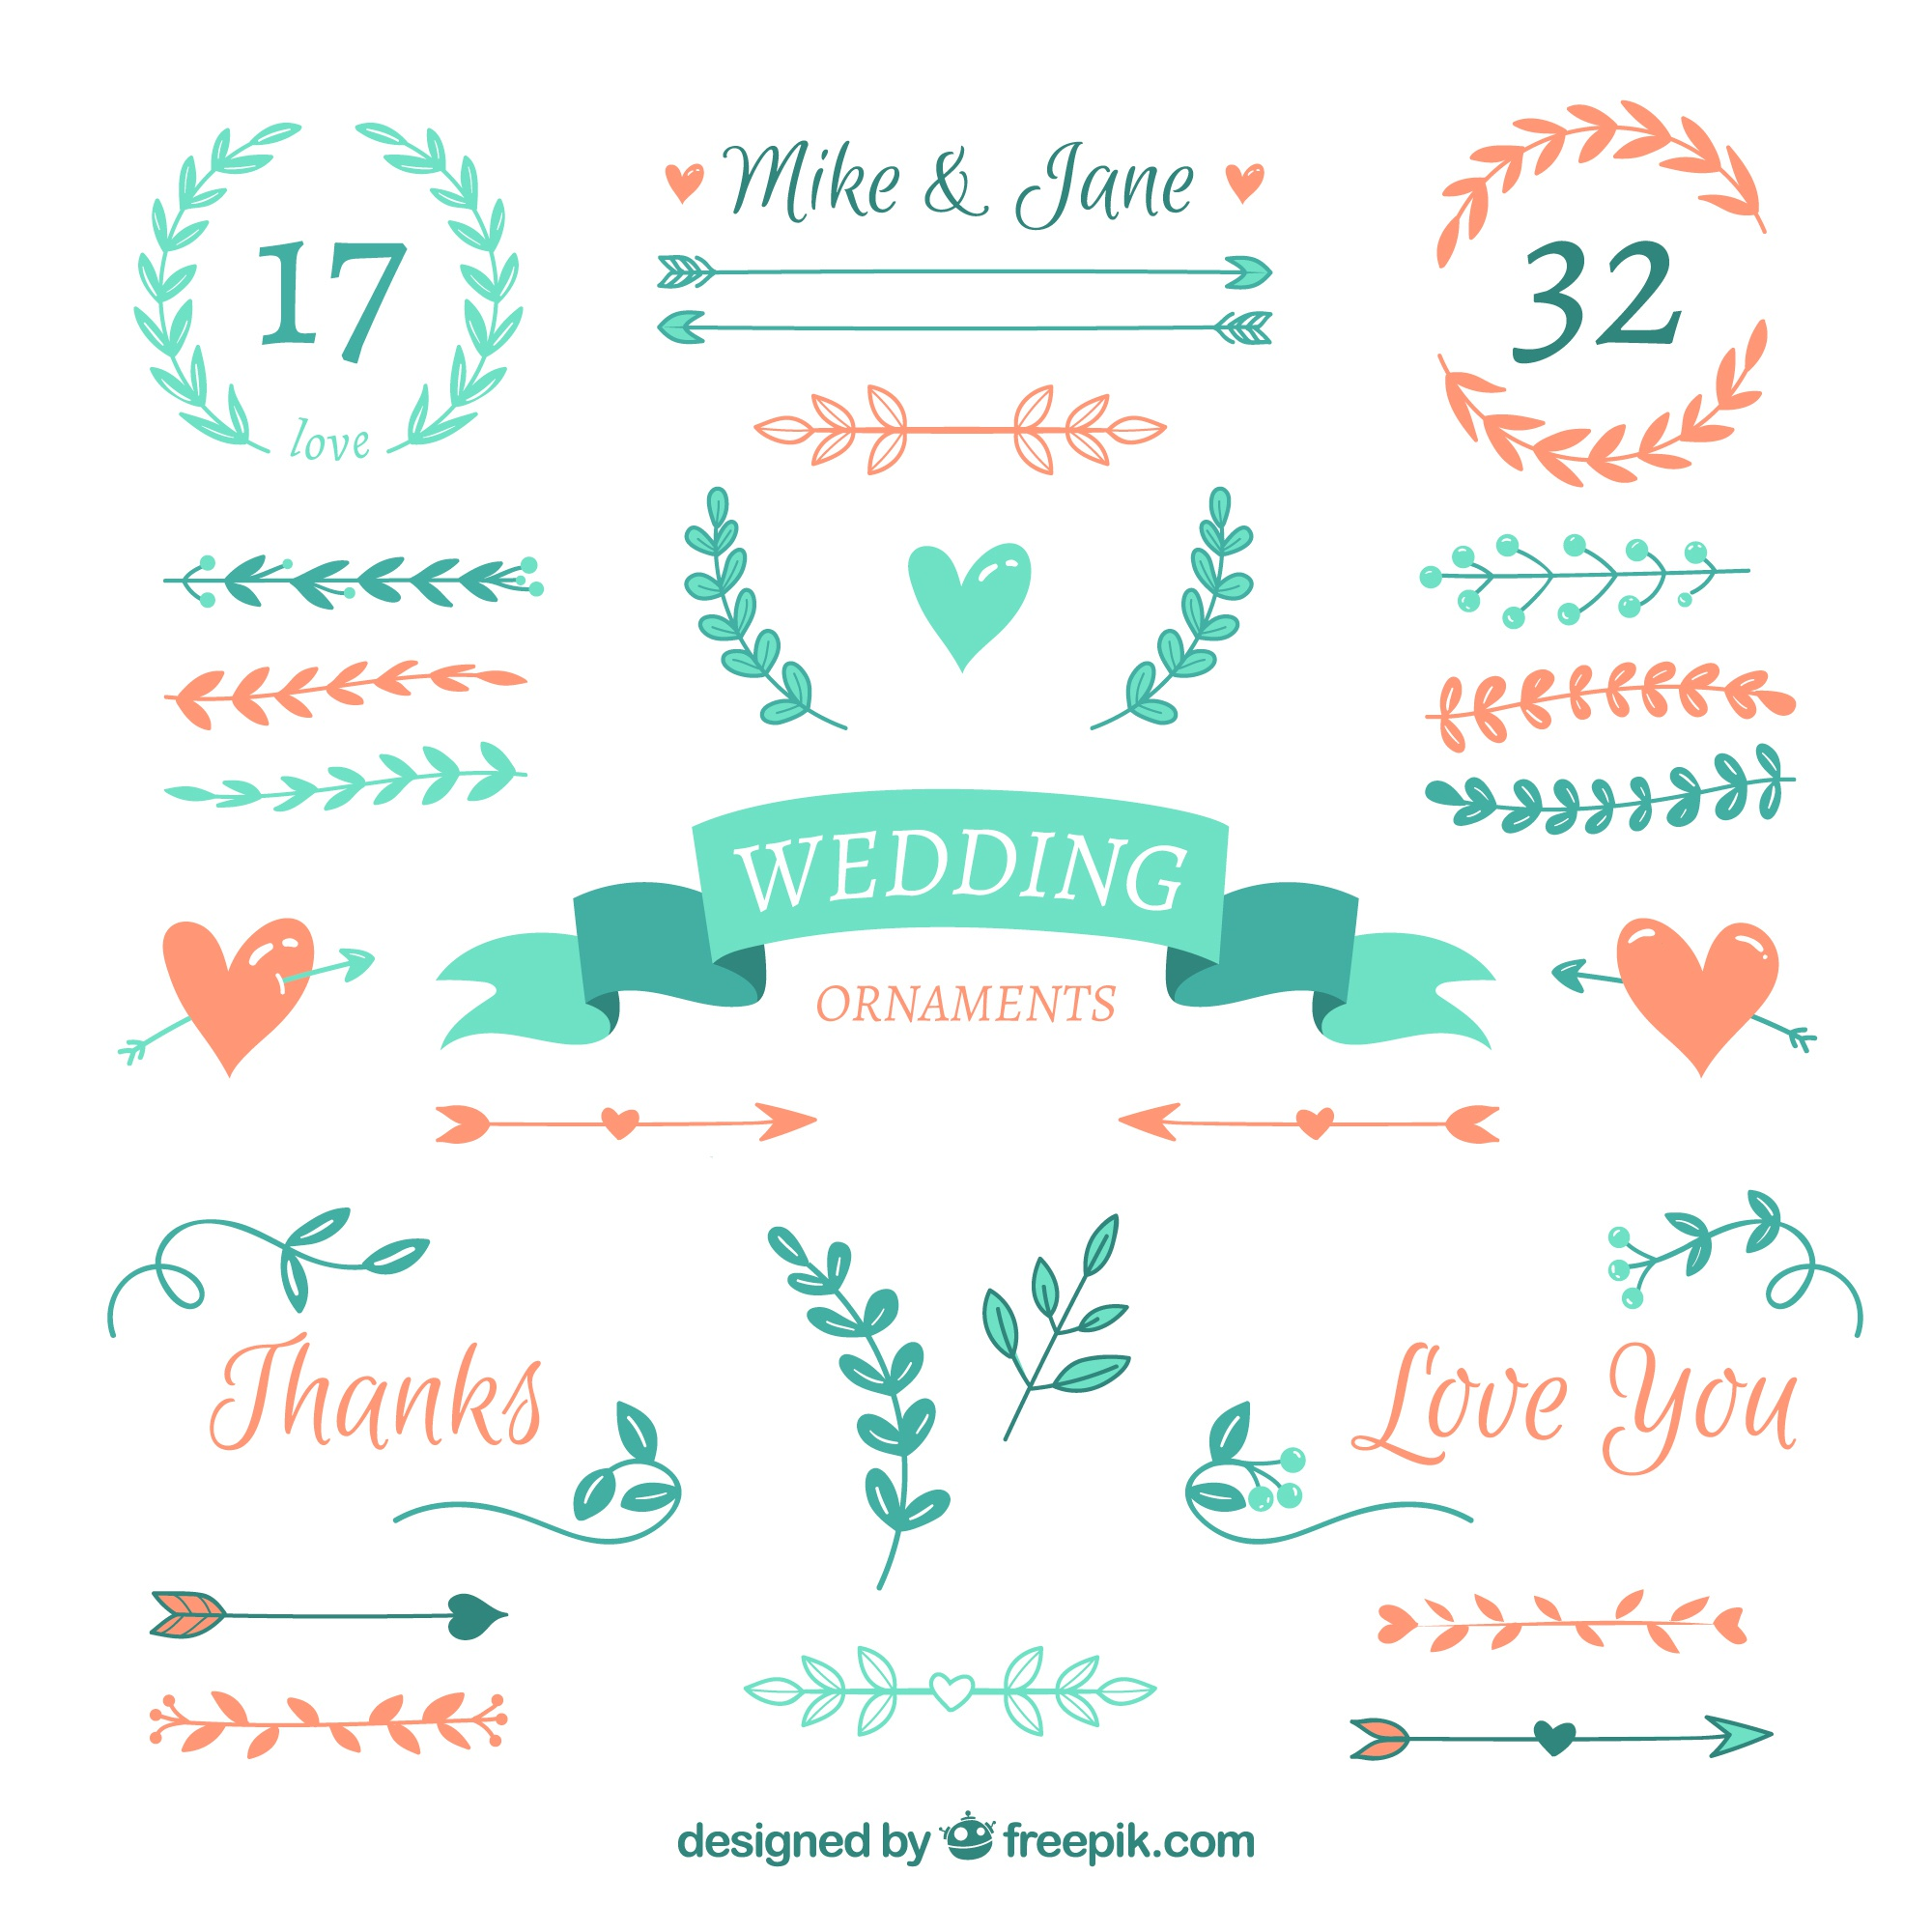 Flat wedding ornament collection